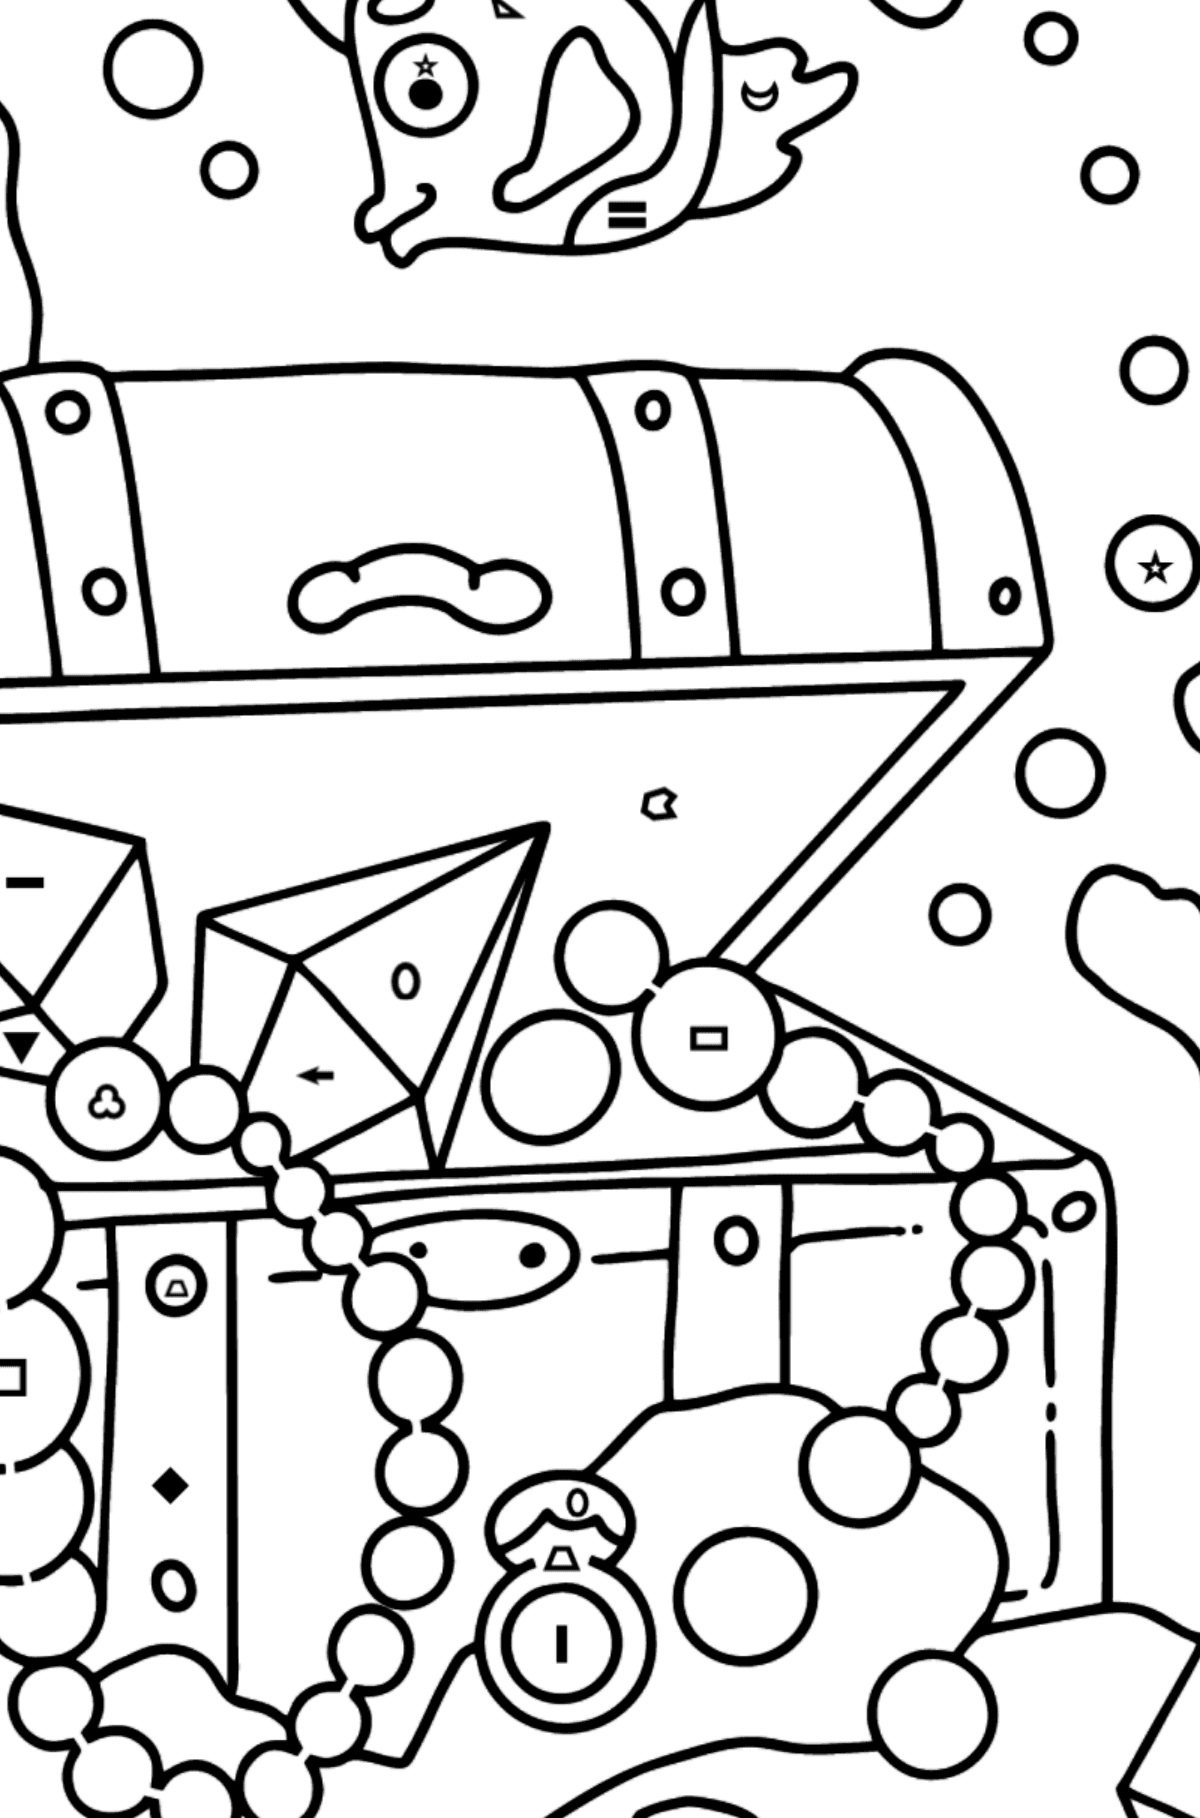 Coloring Page - A Fish is Looking for a Treasure - Coloring by Symbols and Geometric Shapes for Kids